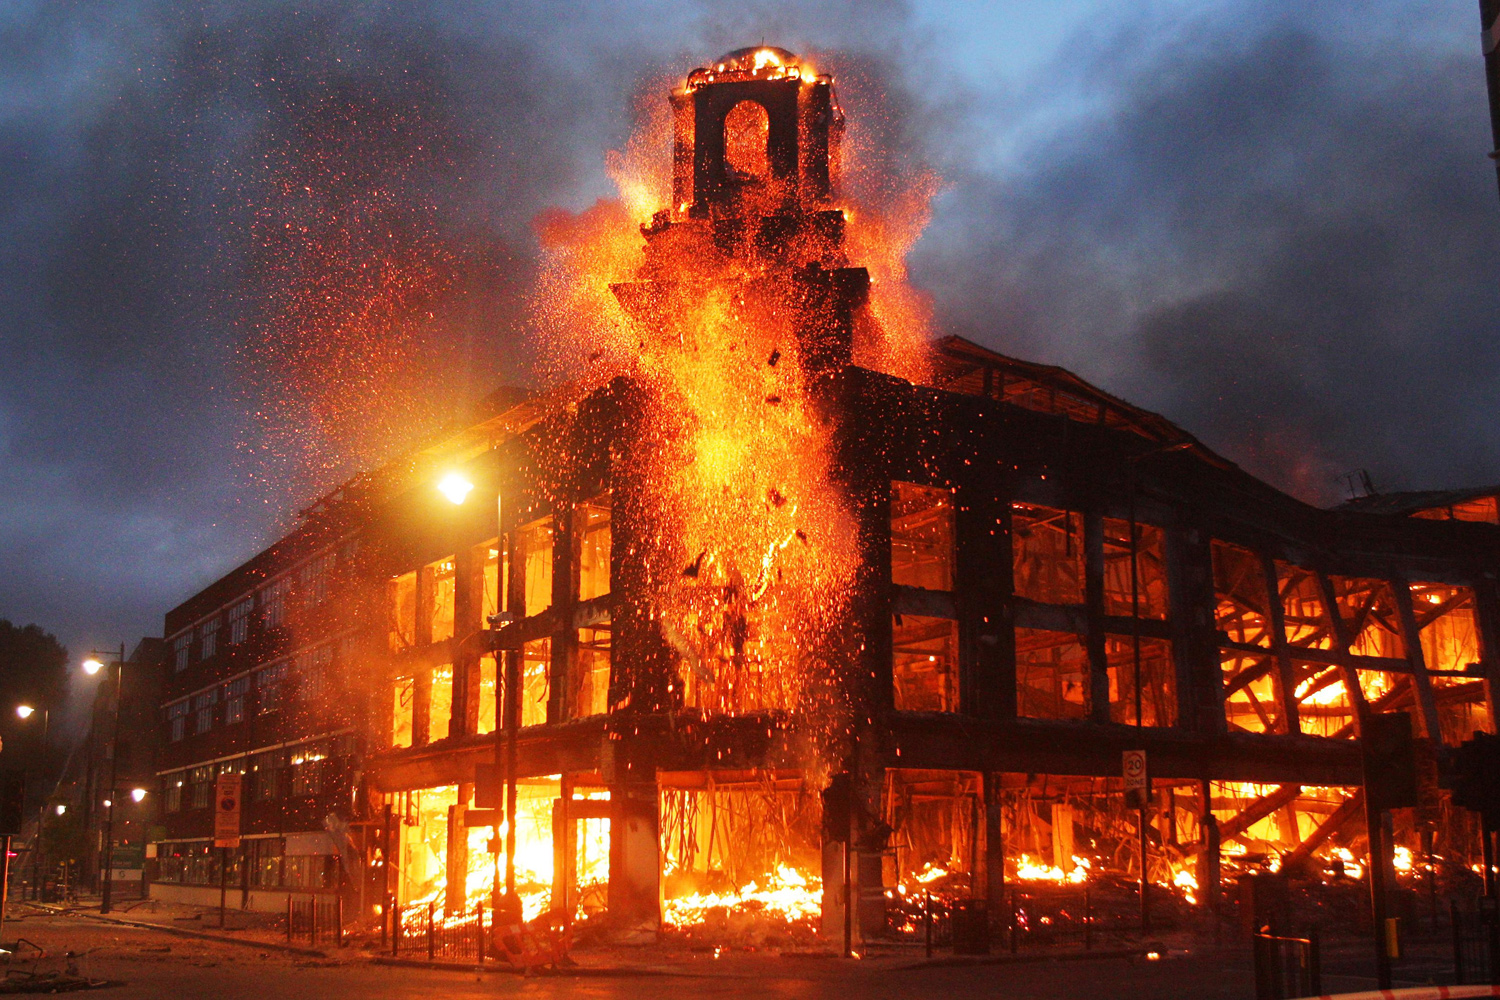 August 7, 2011. Fire rages through a building in Tottenham, north London as trouble flared after members of the community took to the streets to demand  justice  after Mark Duggan, 29, was shot dead by police.